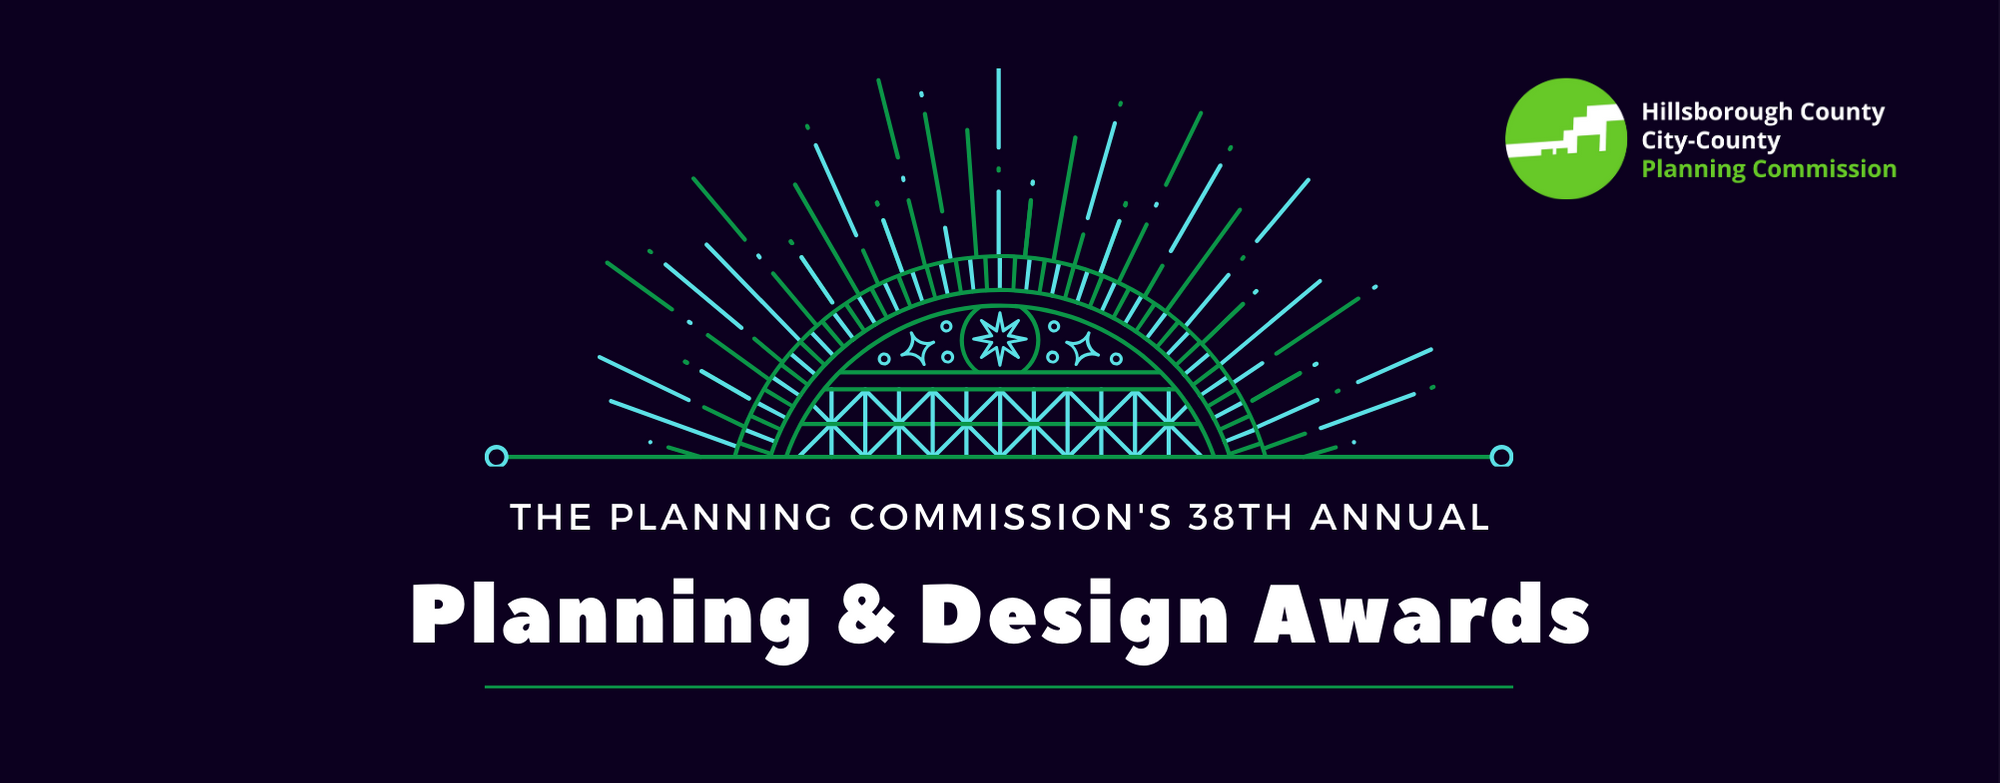 38th Planning and Design Awards Header